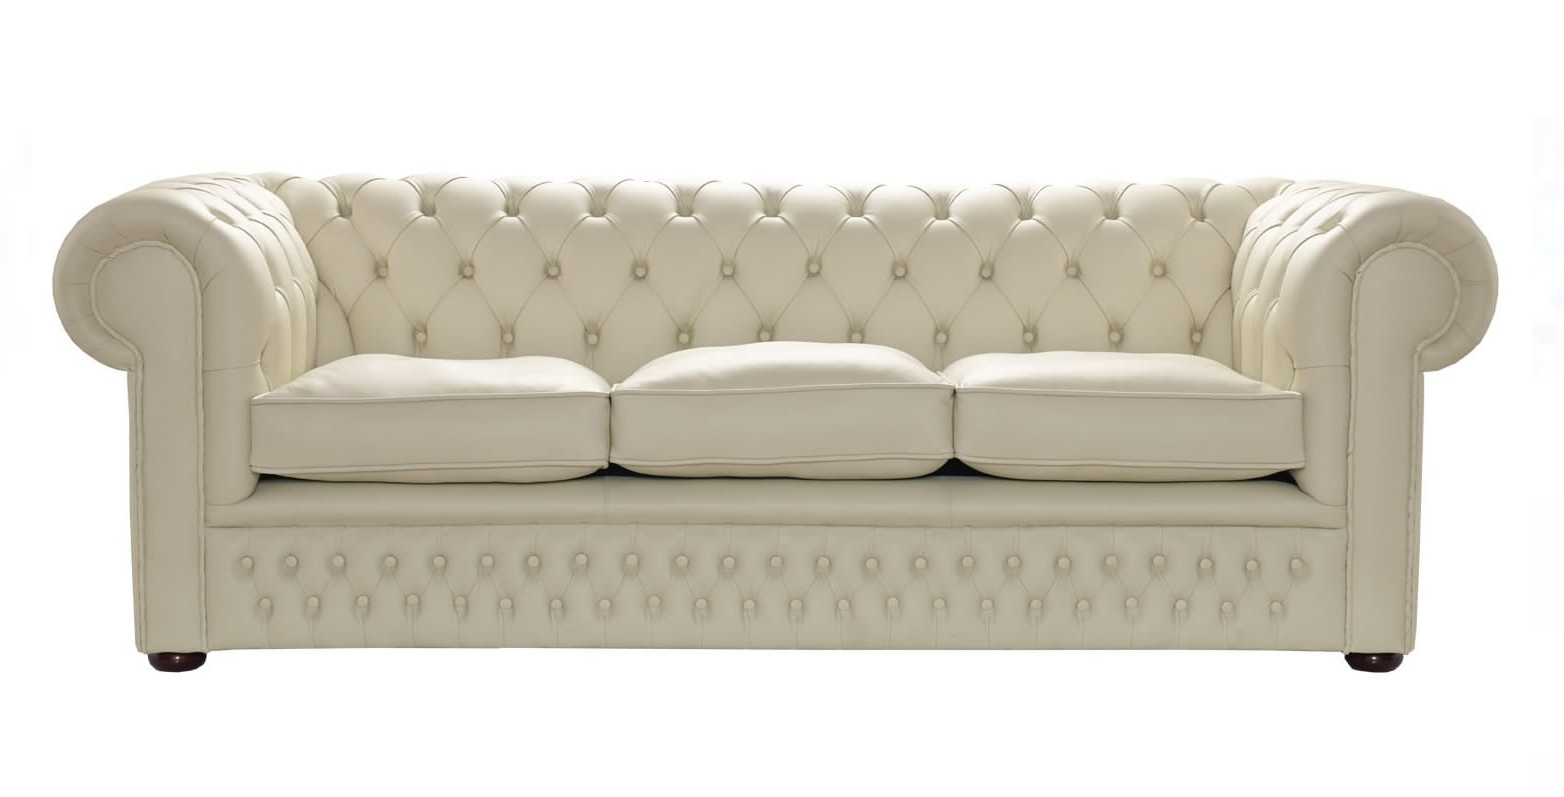 Cream Leather Chesterfield Sofa, Handcrafted In The Uk Pertaining To Famous Tufted Leather Chesterfield Sofas (View 2 of 20)